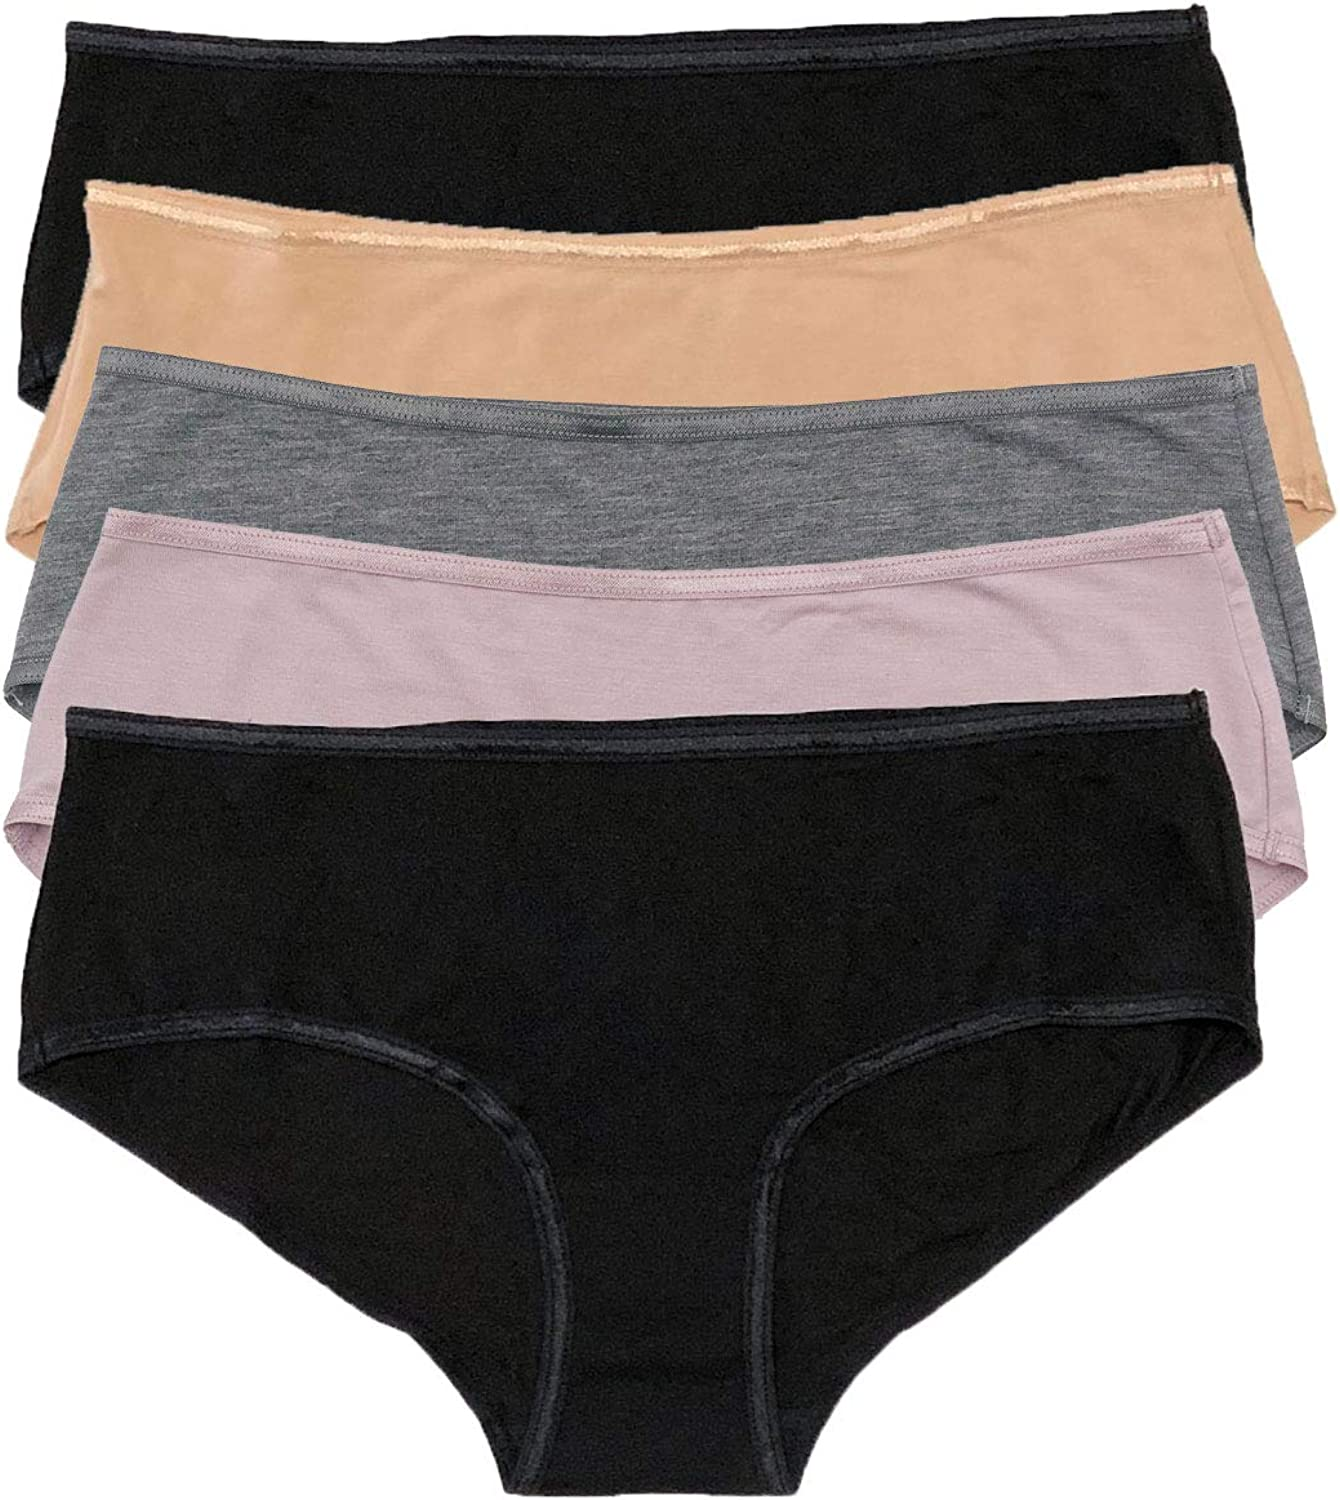 Felina Los Angeles Mall So Smooth Modal Panty Hipster 5-Pack High quality Tagless